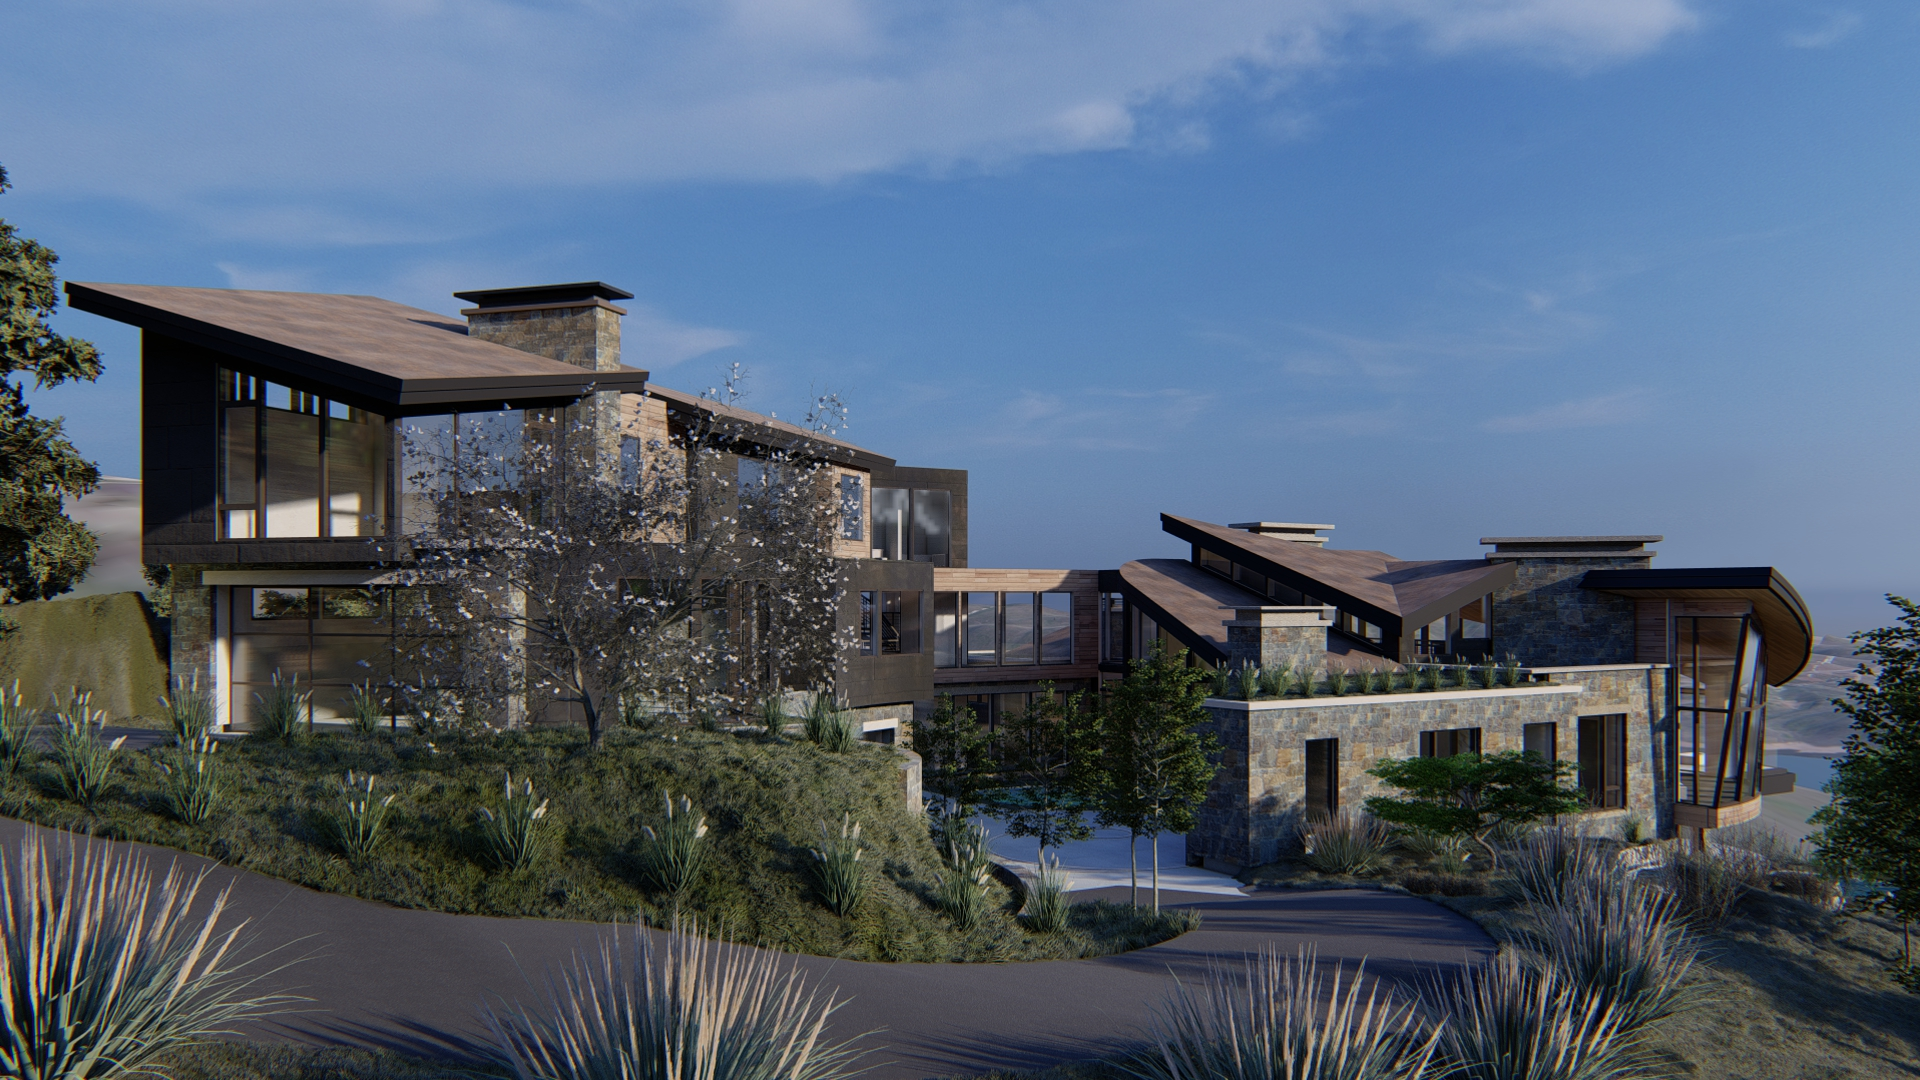 Exterior rendering view of left center of the house